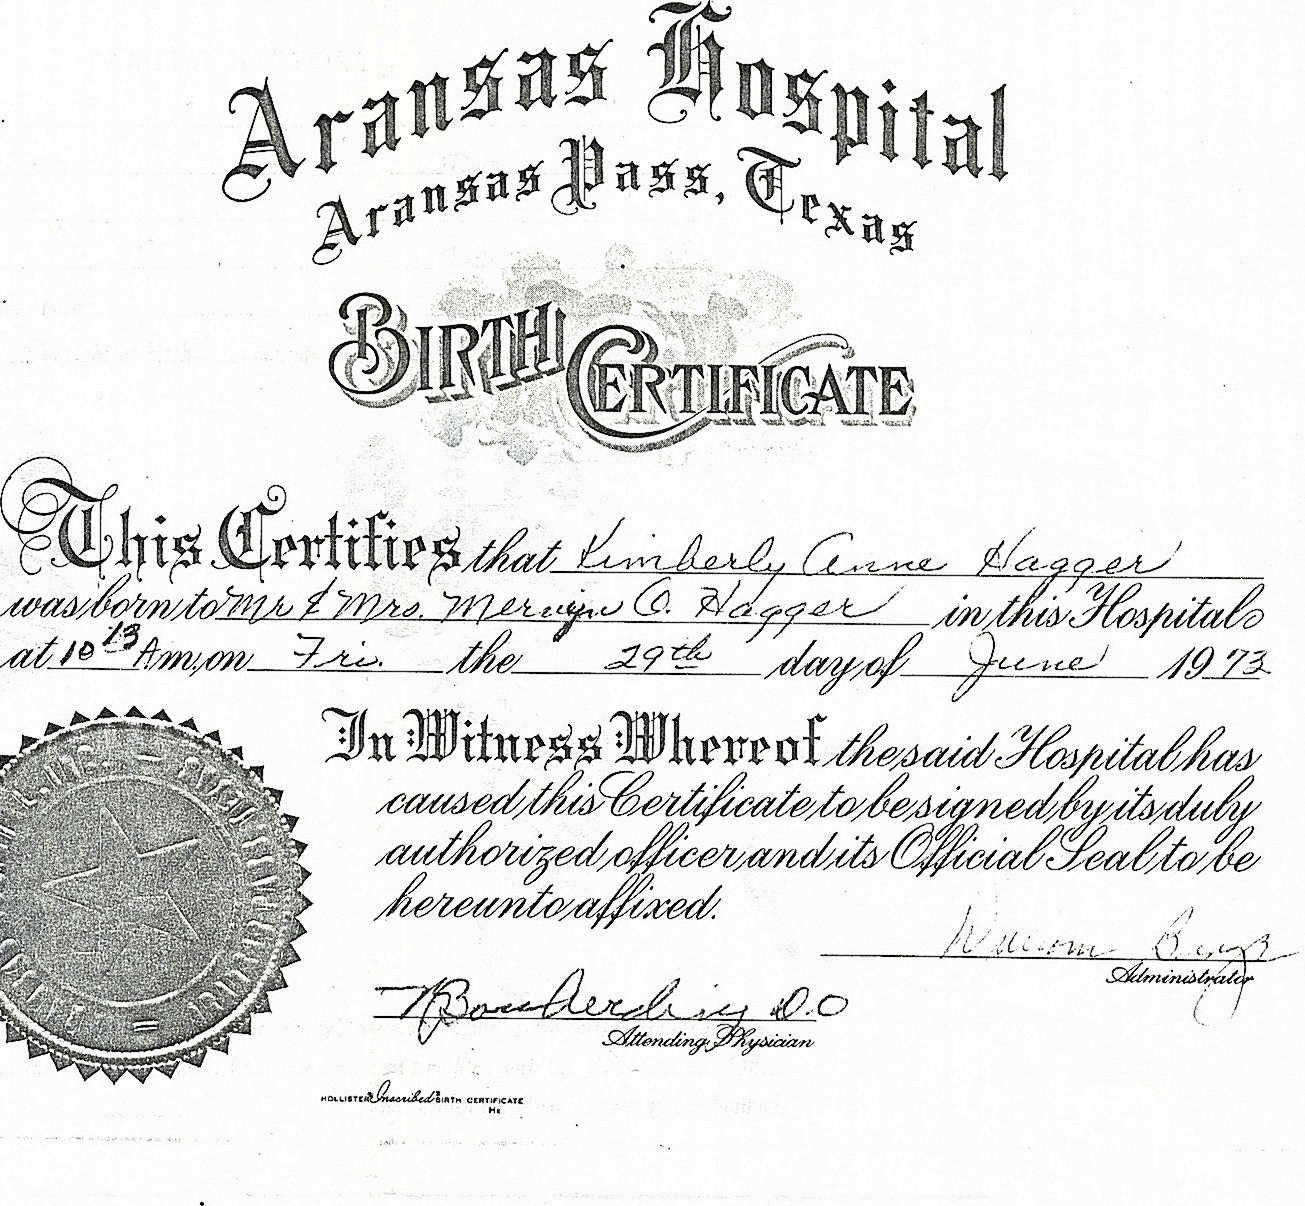 The original birth certificate of Kimberly Anne Hagger